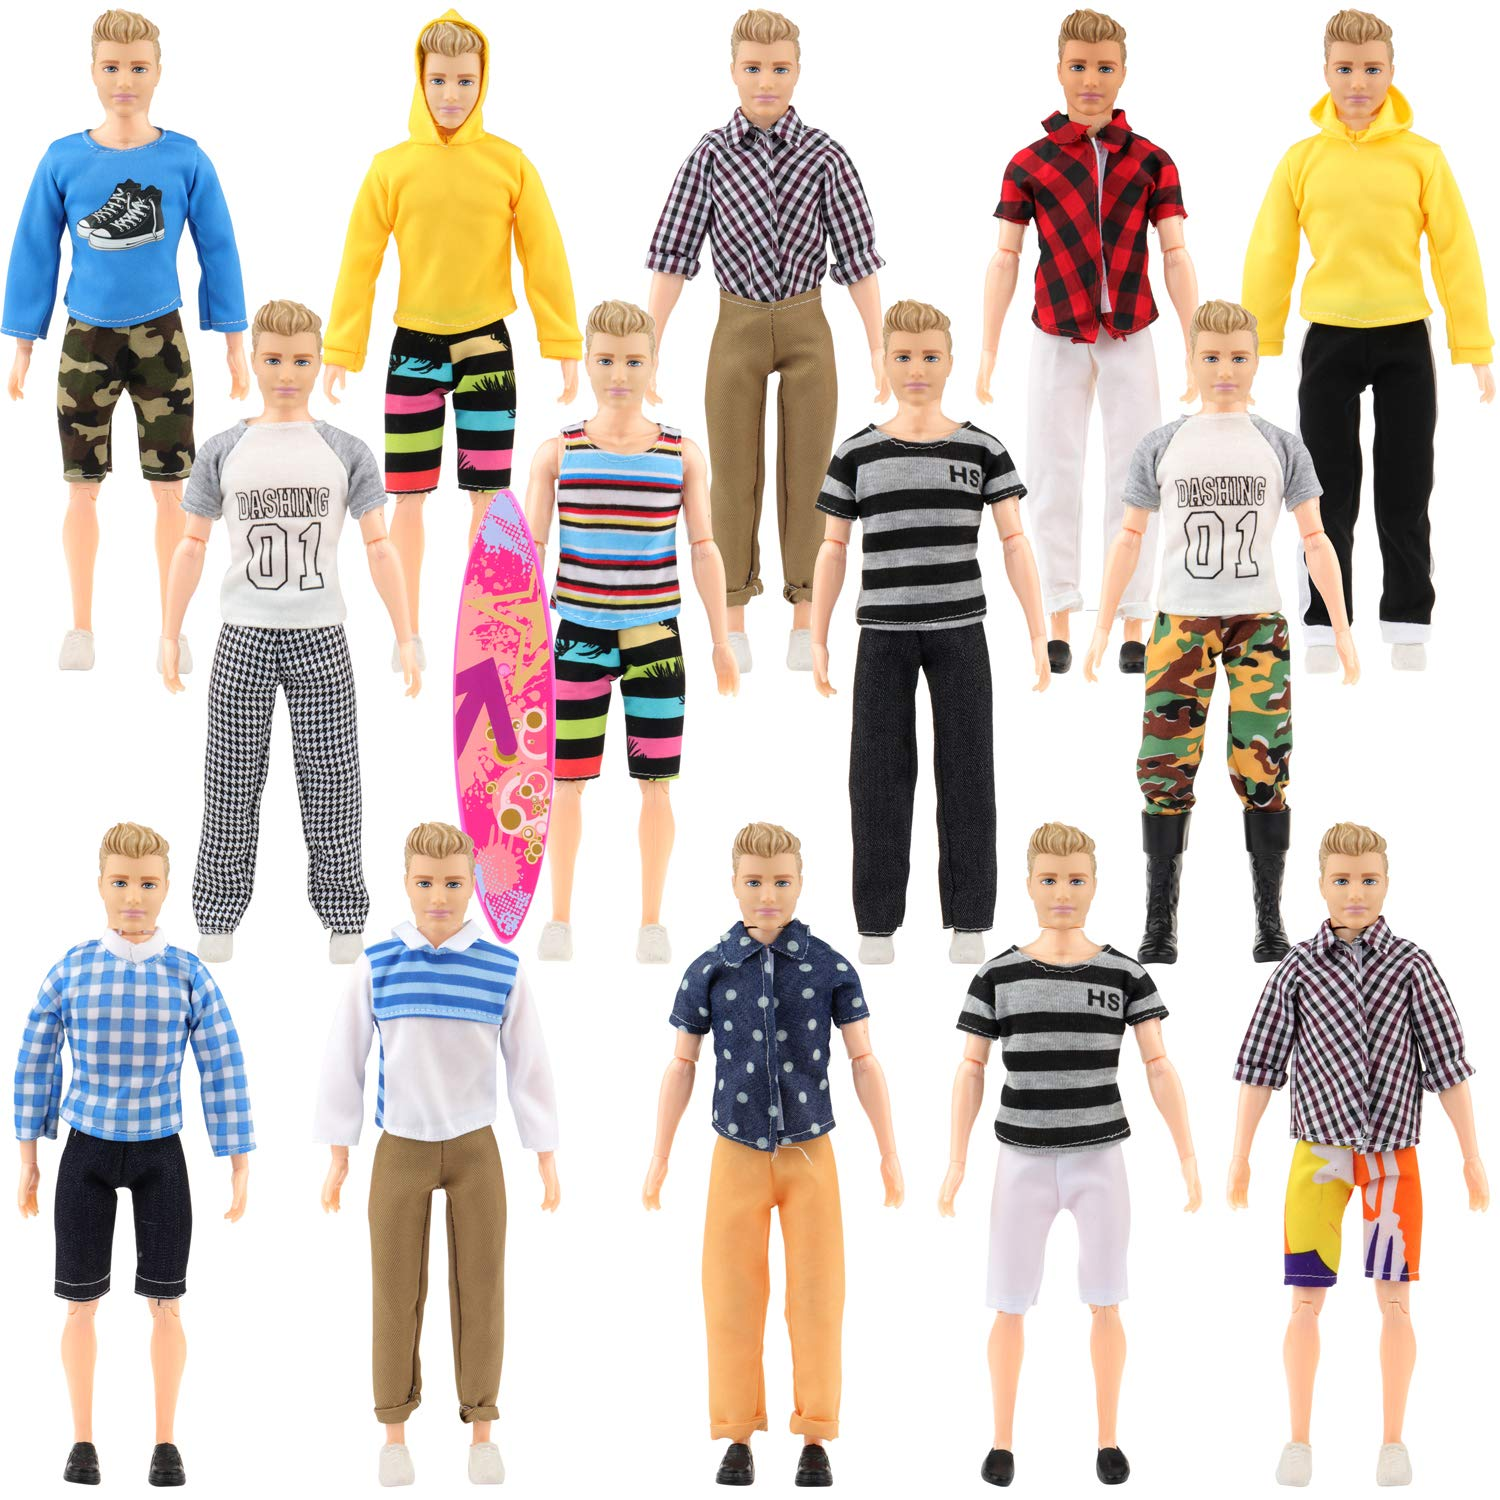 SOTOGO 27 Pcs Doll Clothes Set Include 12 Set Doll Casual/Career Wear Clothes Jacket Pants Outfits with Surfboard and 4 Pairs of Shoes for Ken Dolls